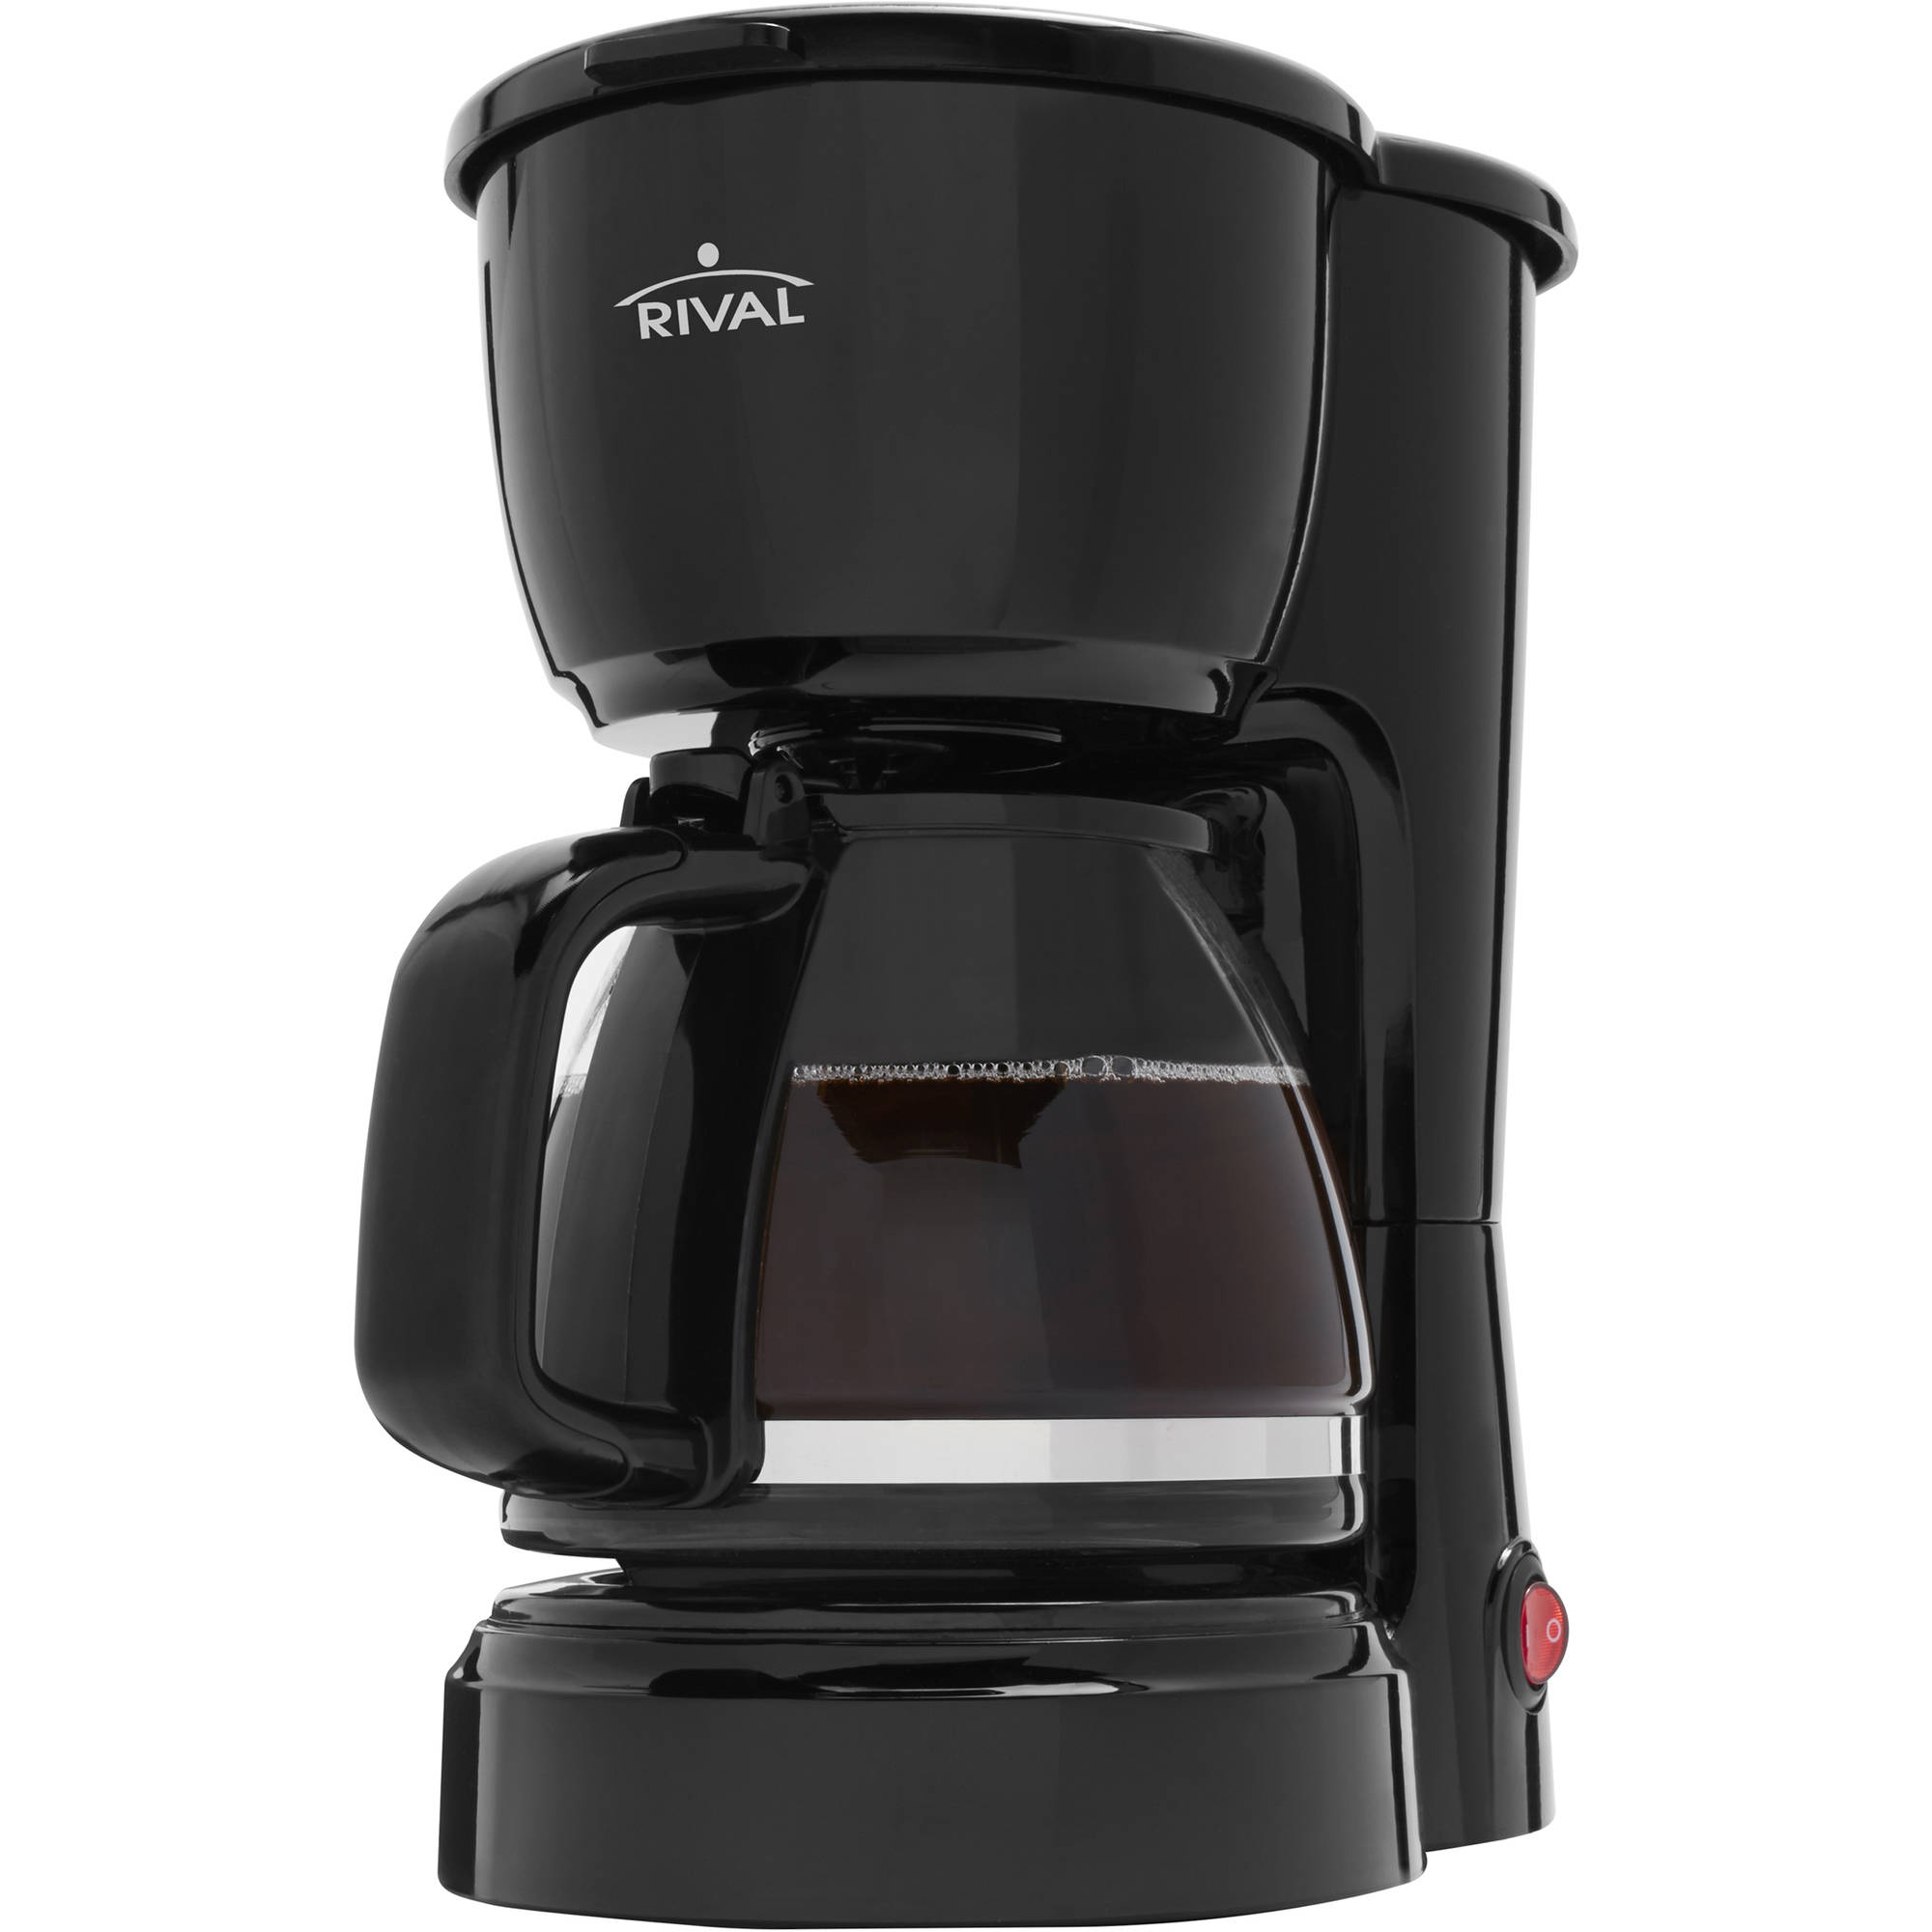 Rival 5 Cup Coffee Maker, 1 Each